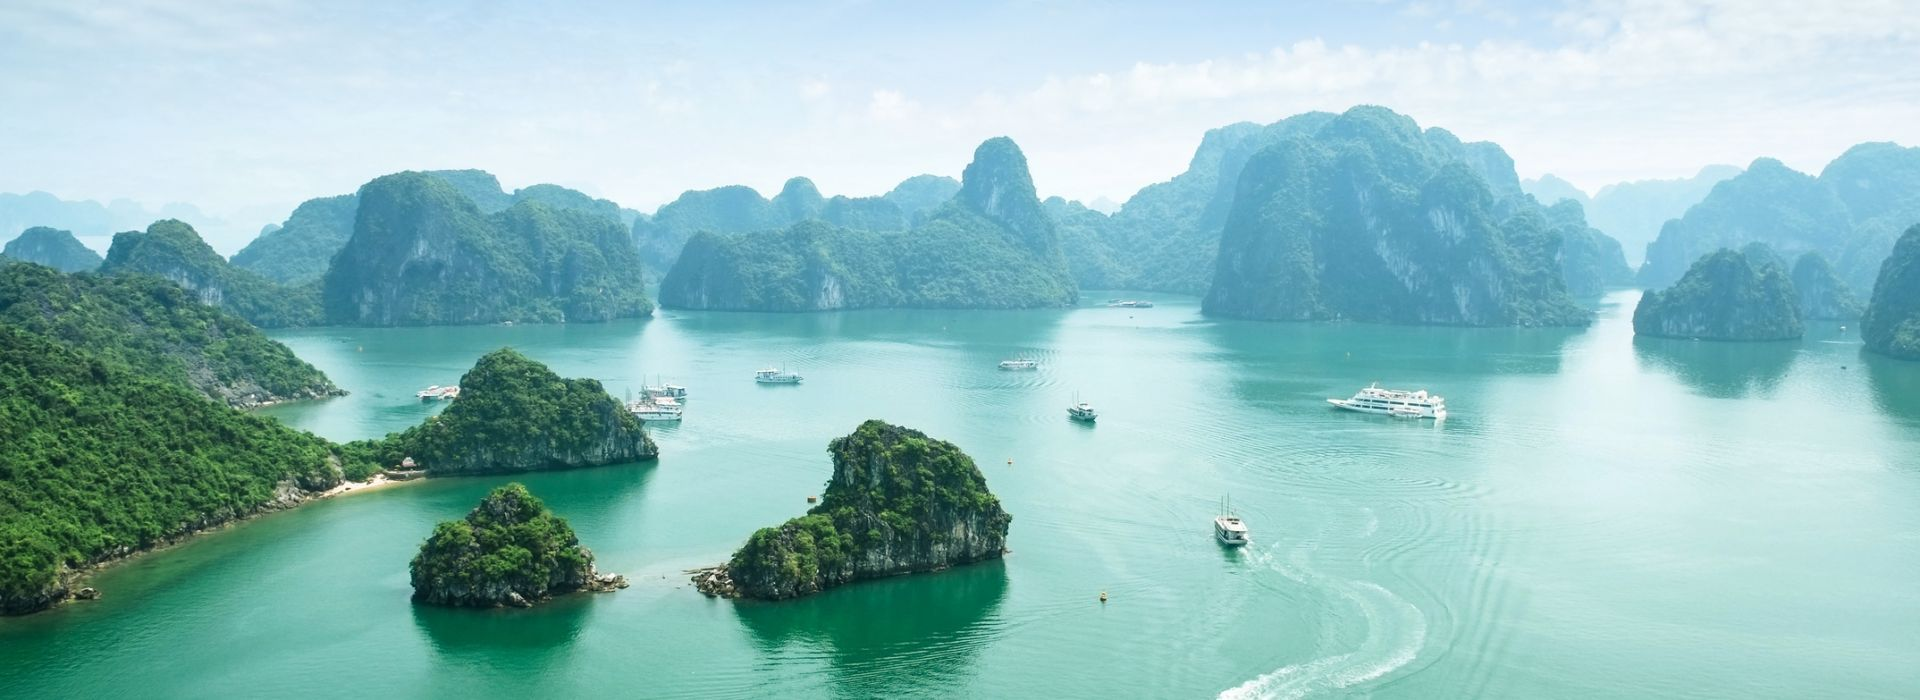 Boat tours, water sports and marine wildlife in Halong Bay